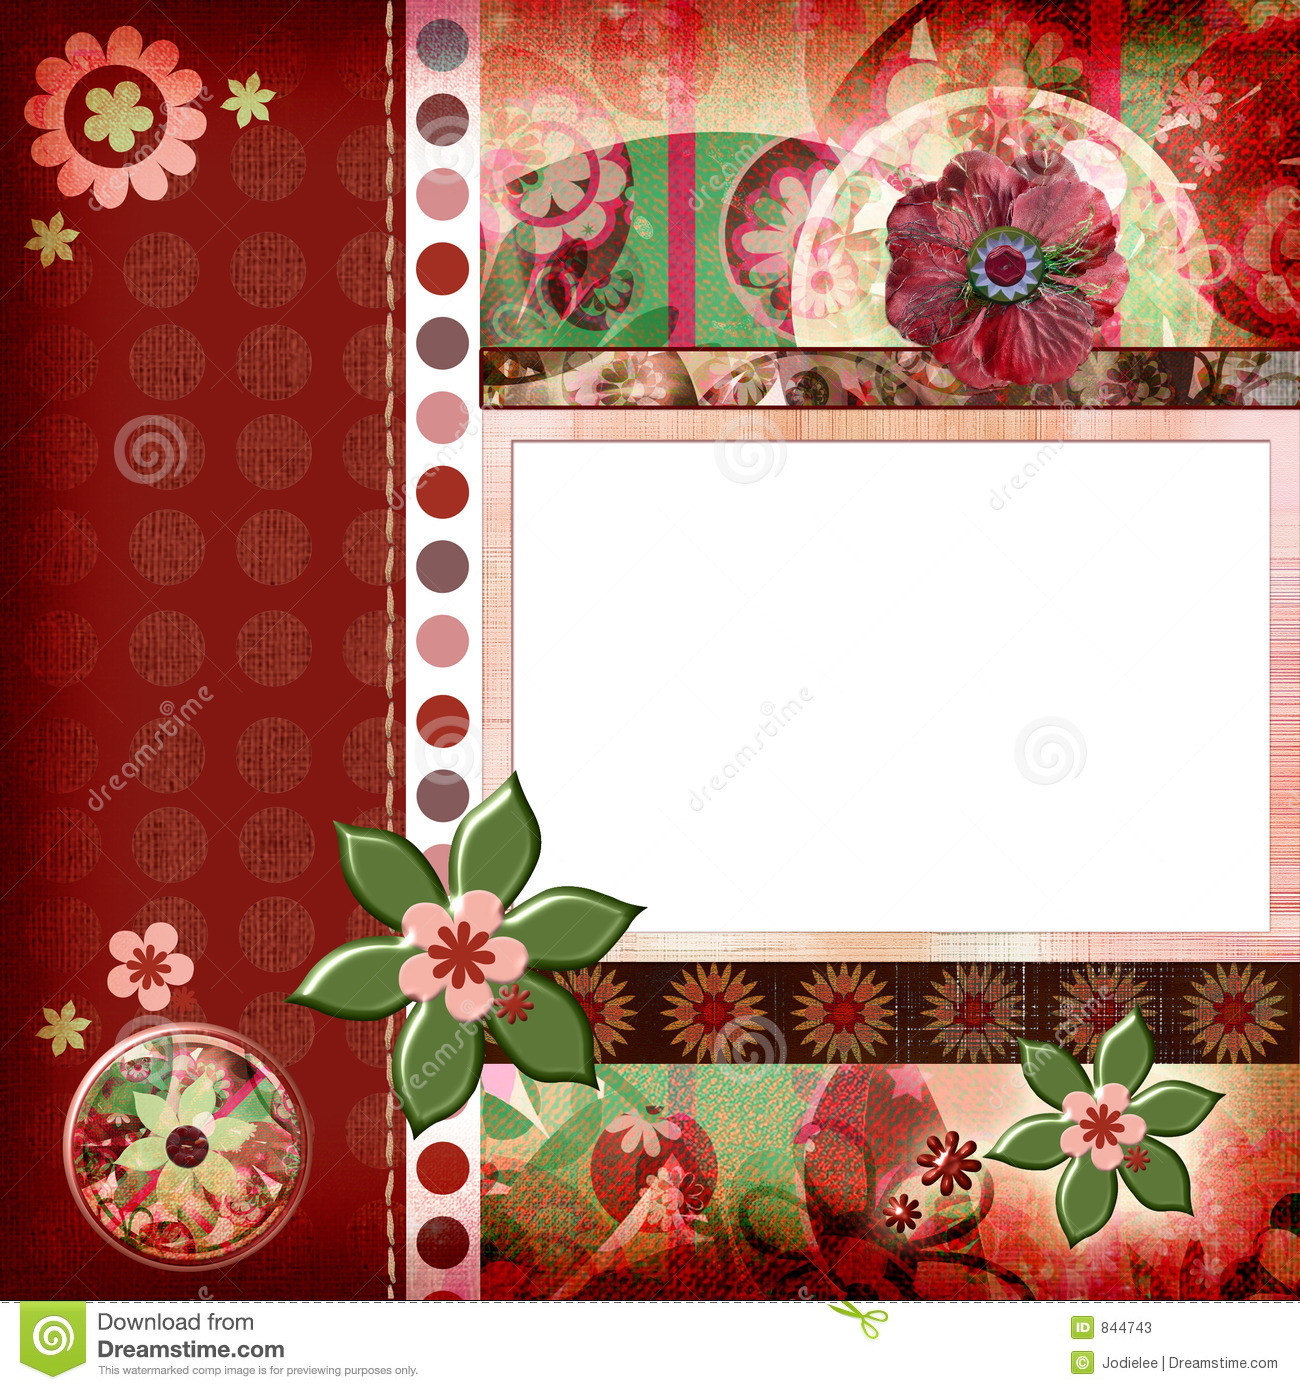 How to scrapbook 8x8 layouts - Bohemian Gypsy Style Scrapbook Album Page Layout 8x8 Inches Stock Photos